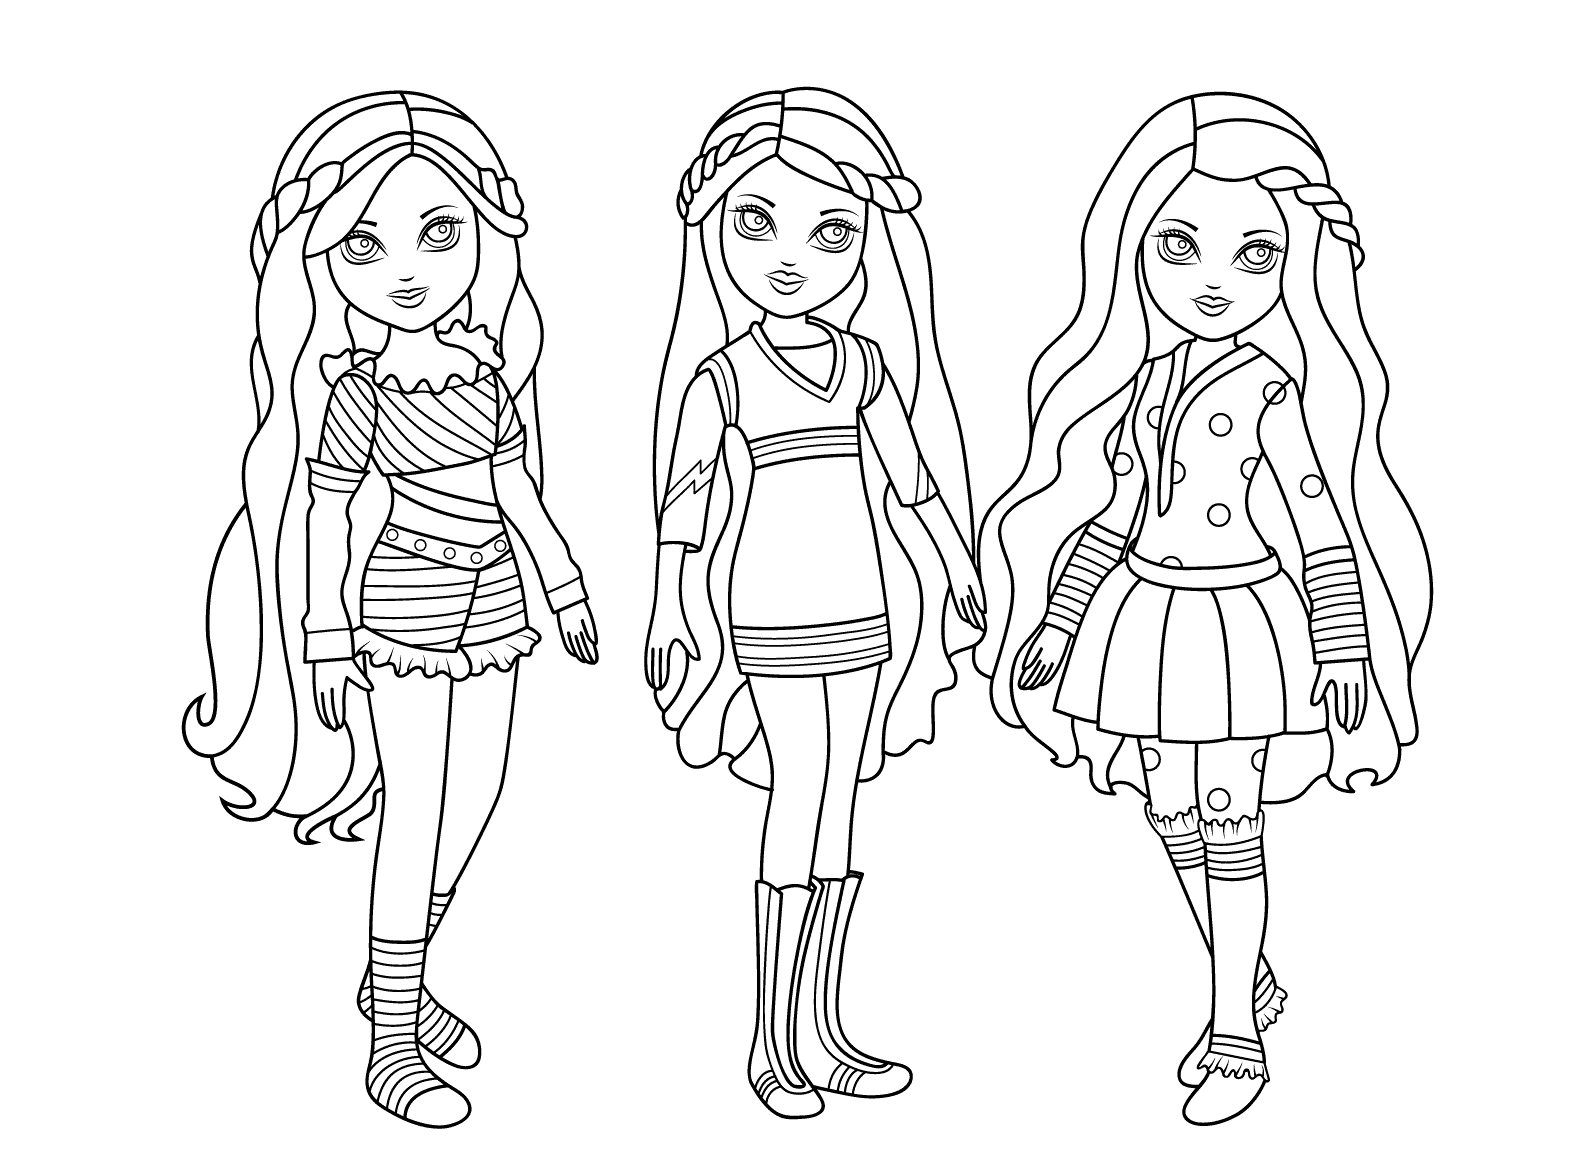 dolls coloring pages doll coloring pages to download and print for free dolls pages coloring